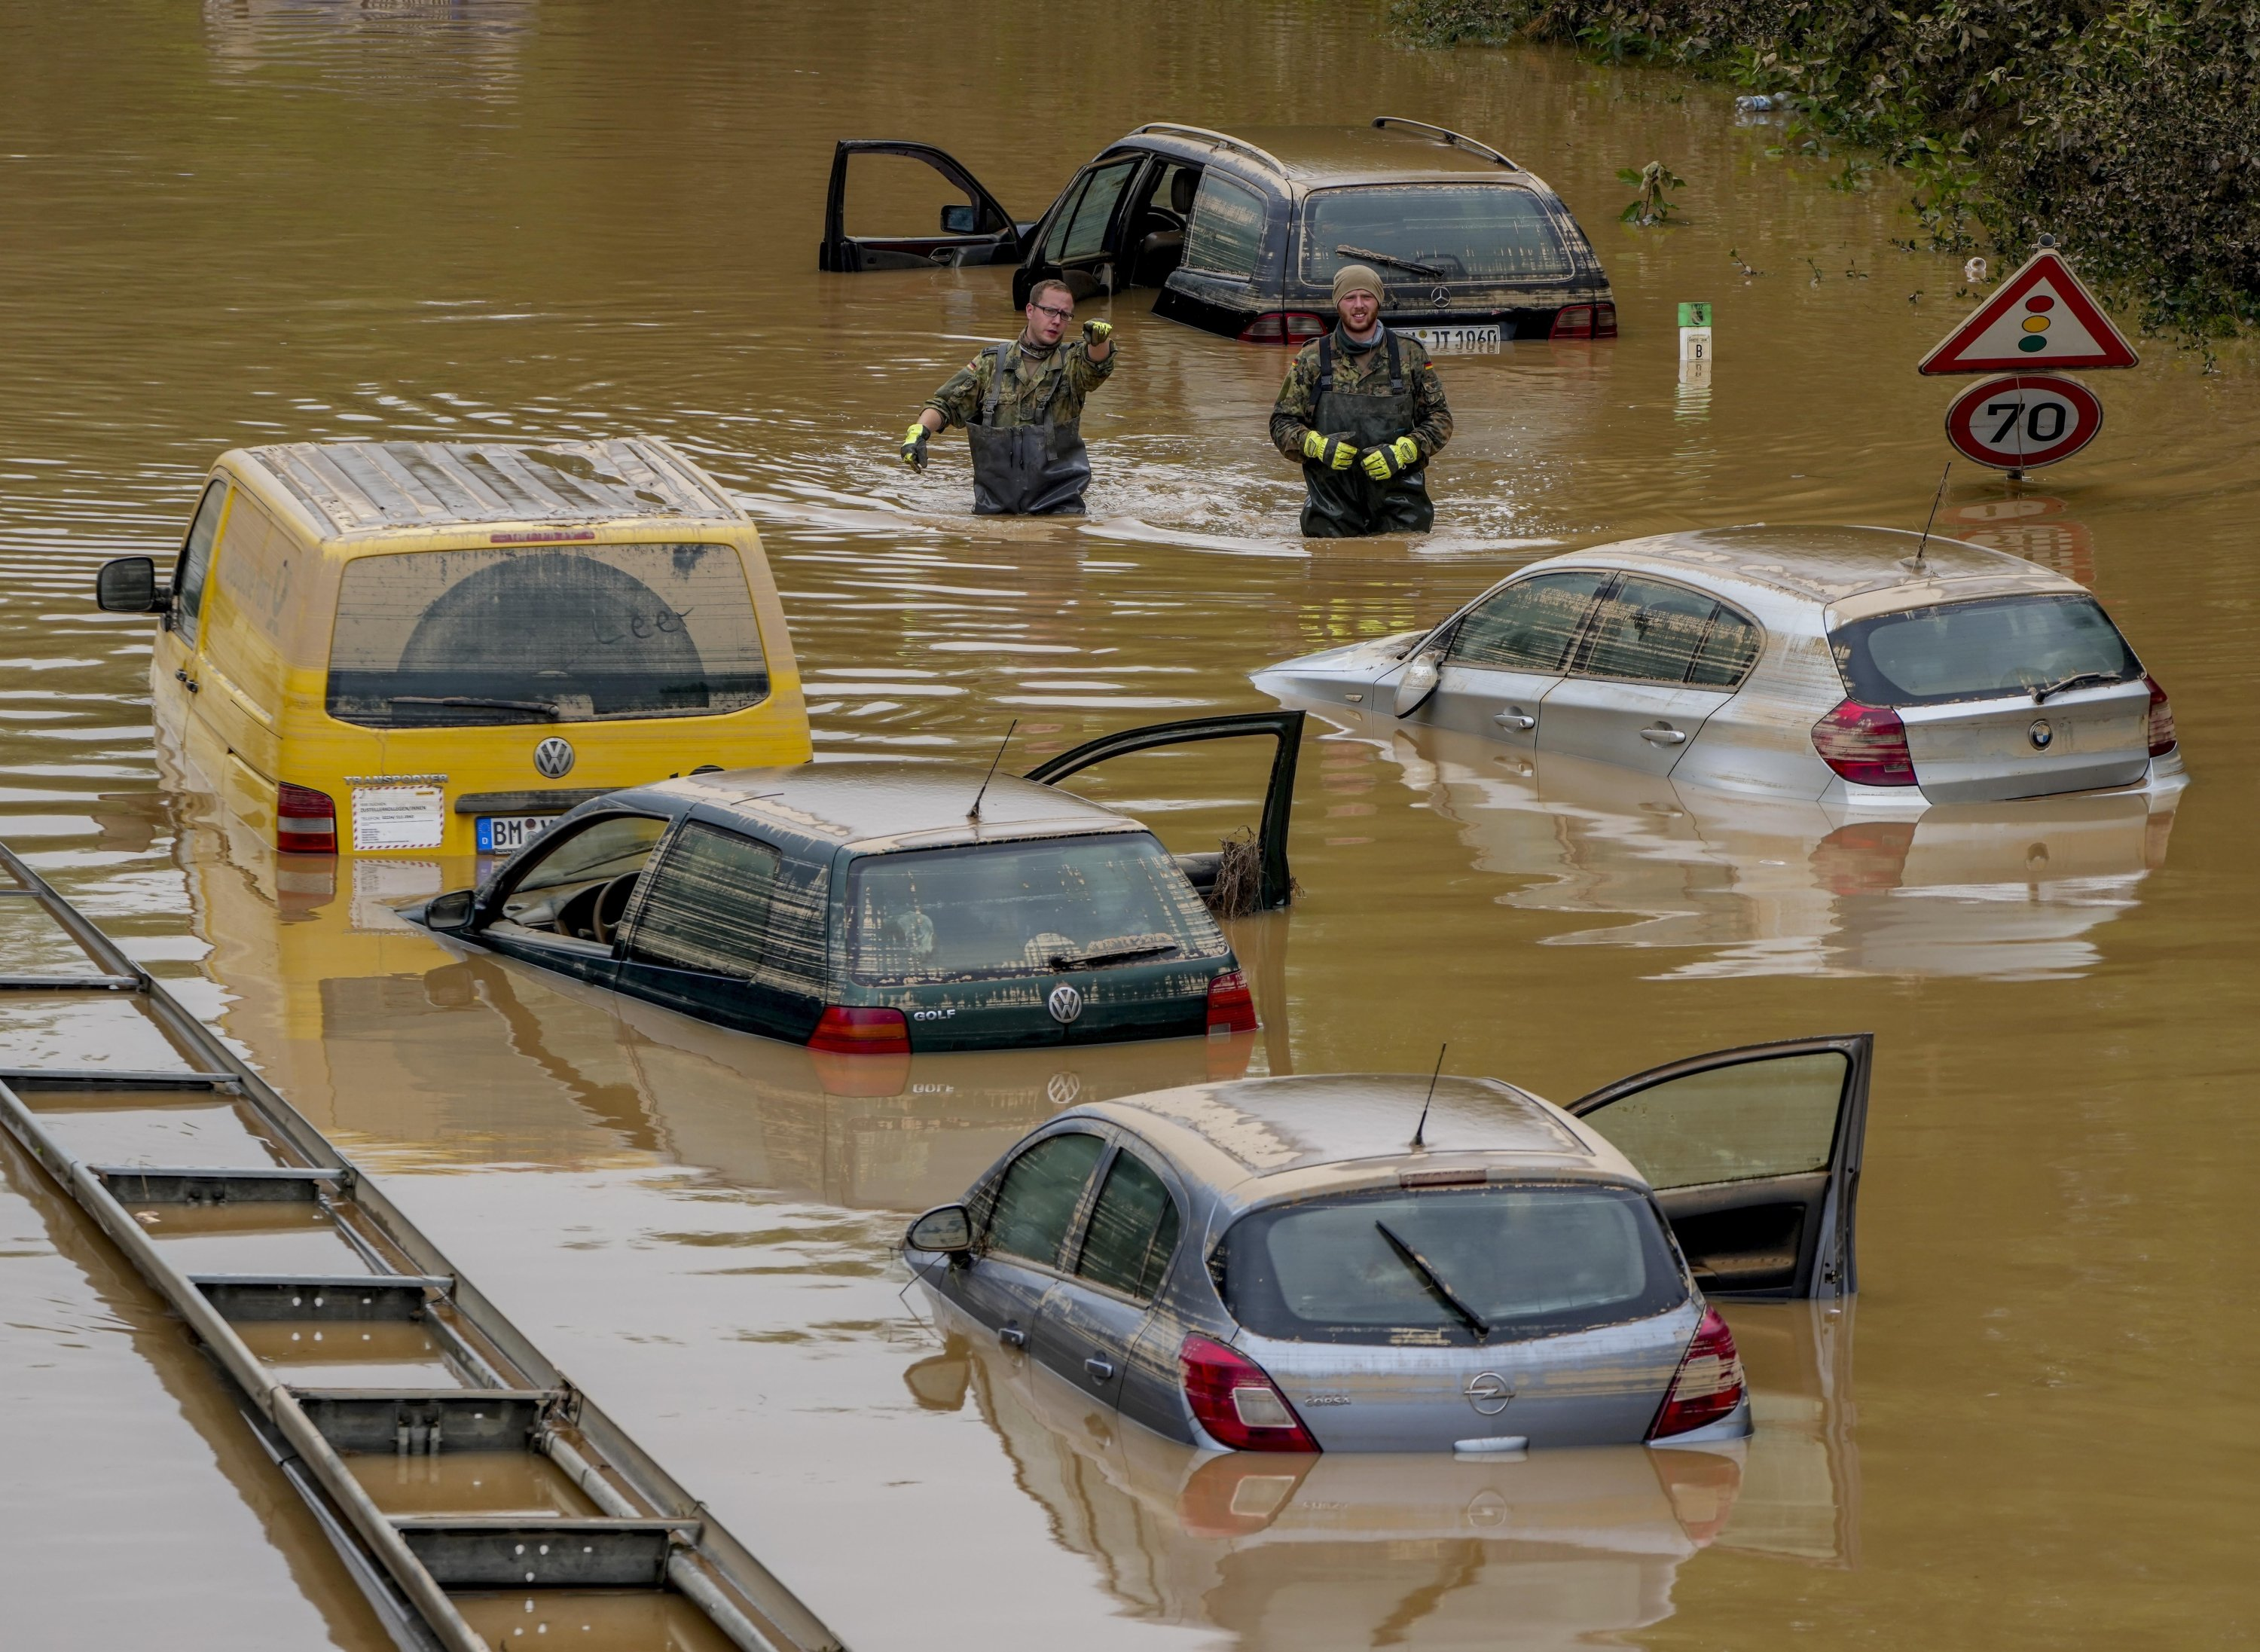 People check for victims in flooded cars on a road in Erftstadt, Germany, following heavy rainfall that broke the banks of the Erft river, causing massive damage, July 17, 2021. (AP Photo)